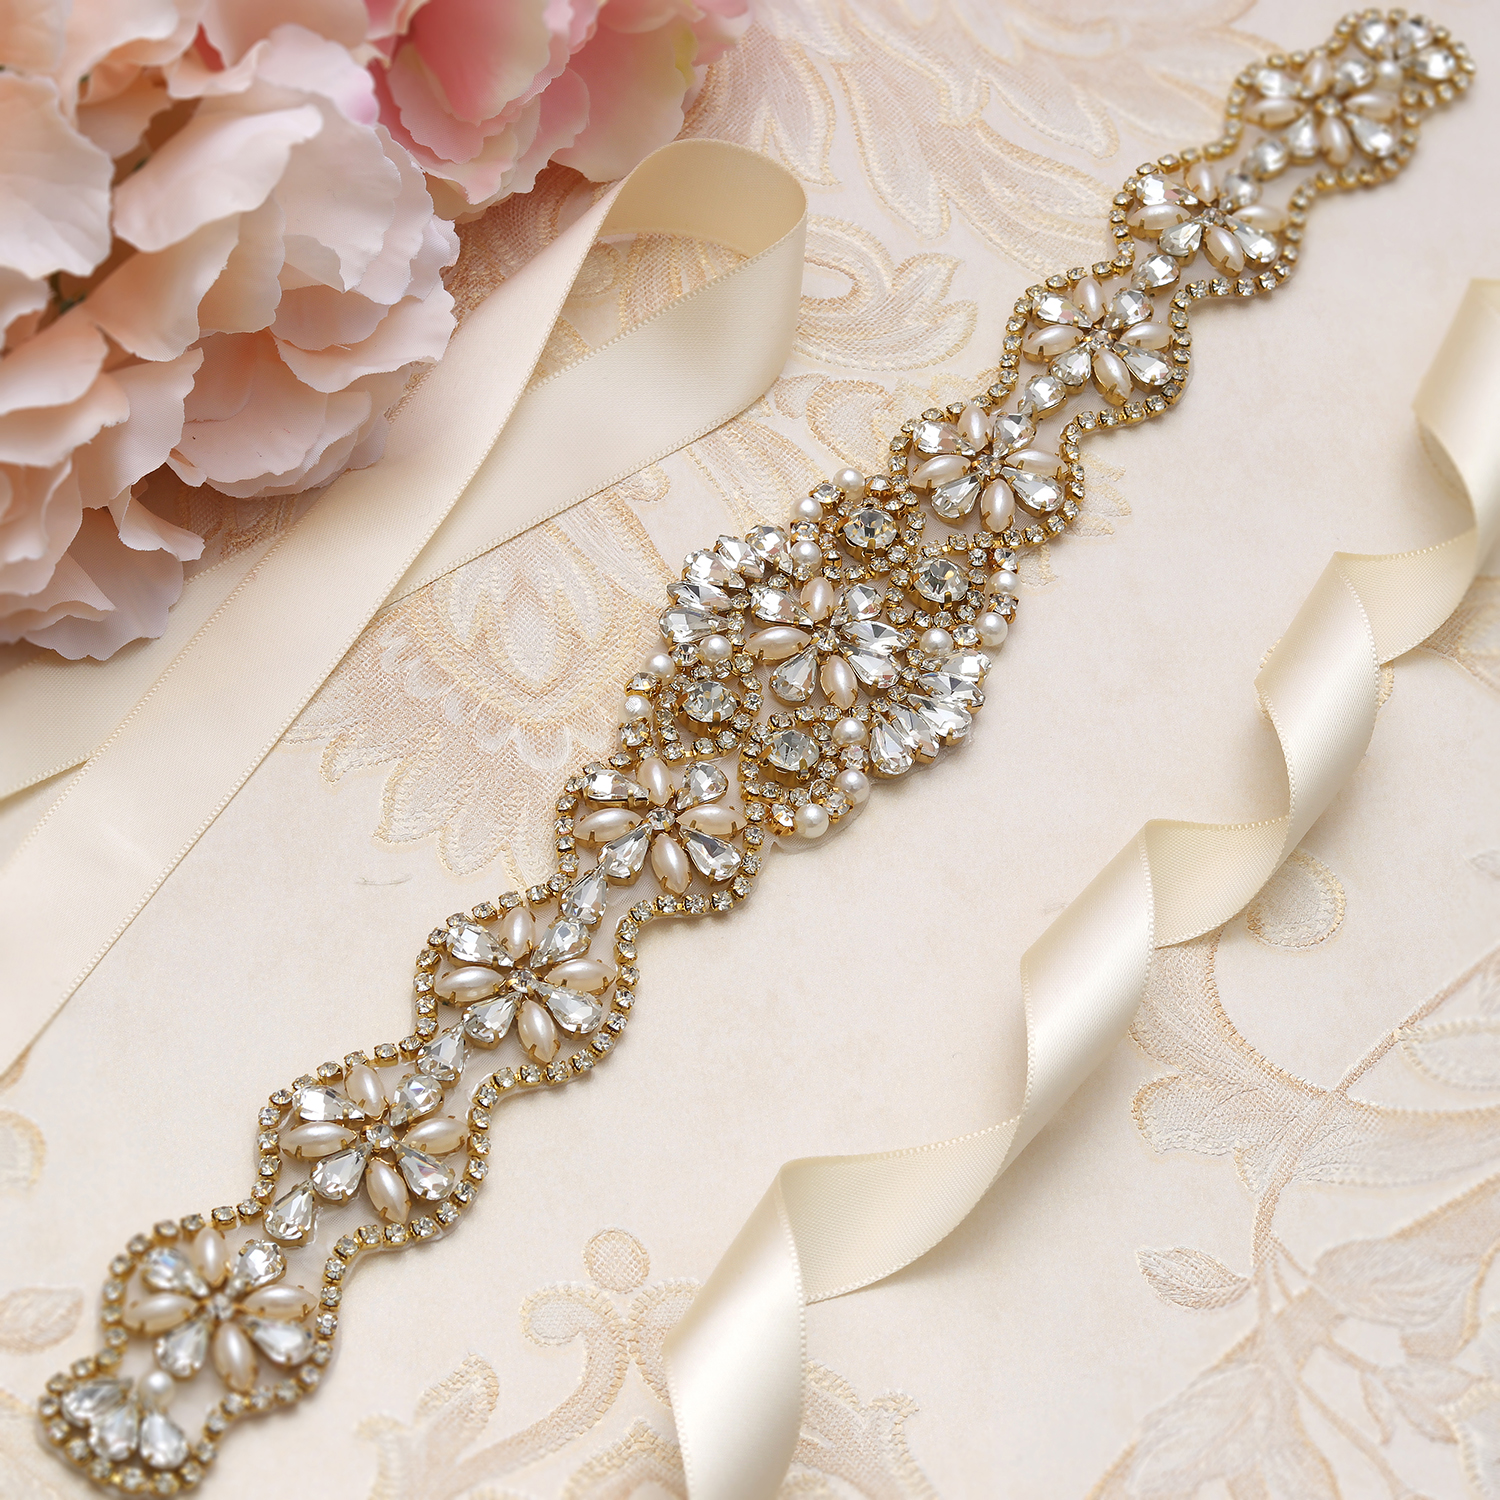 MissRDress Wedding Rhinestones Bridal Belt Pearls Crystal Bridal Belt Jeweled Bridal Sash For Wedding Dresses Pearl Belt JK806